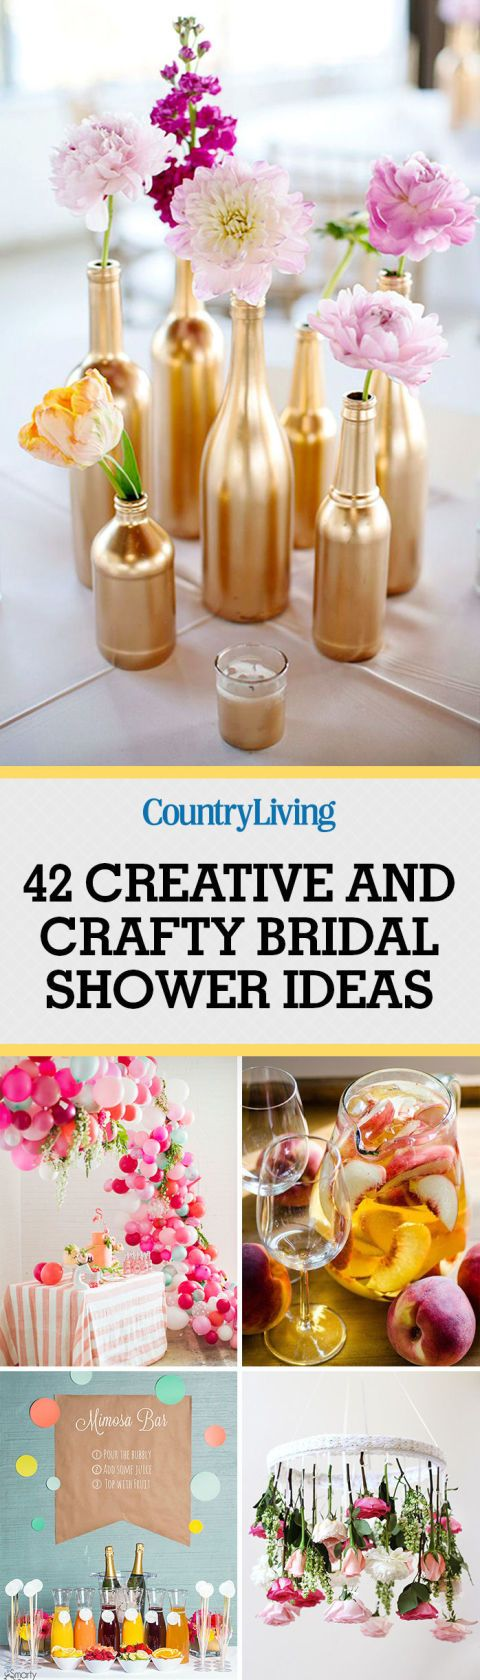 Pinterest wedding shower - 50 Creative And Crafty Bridal Shower Ideas She Ll Love Bridal Showers Bridal Showers And Craft